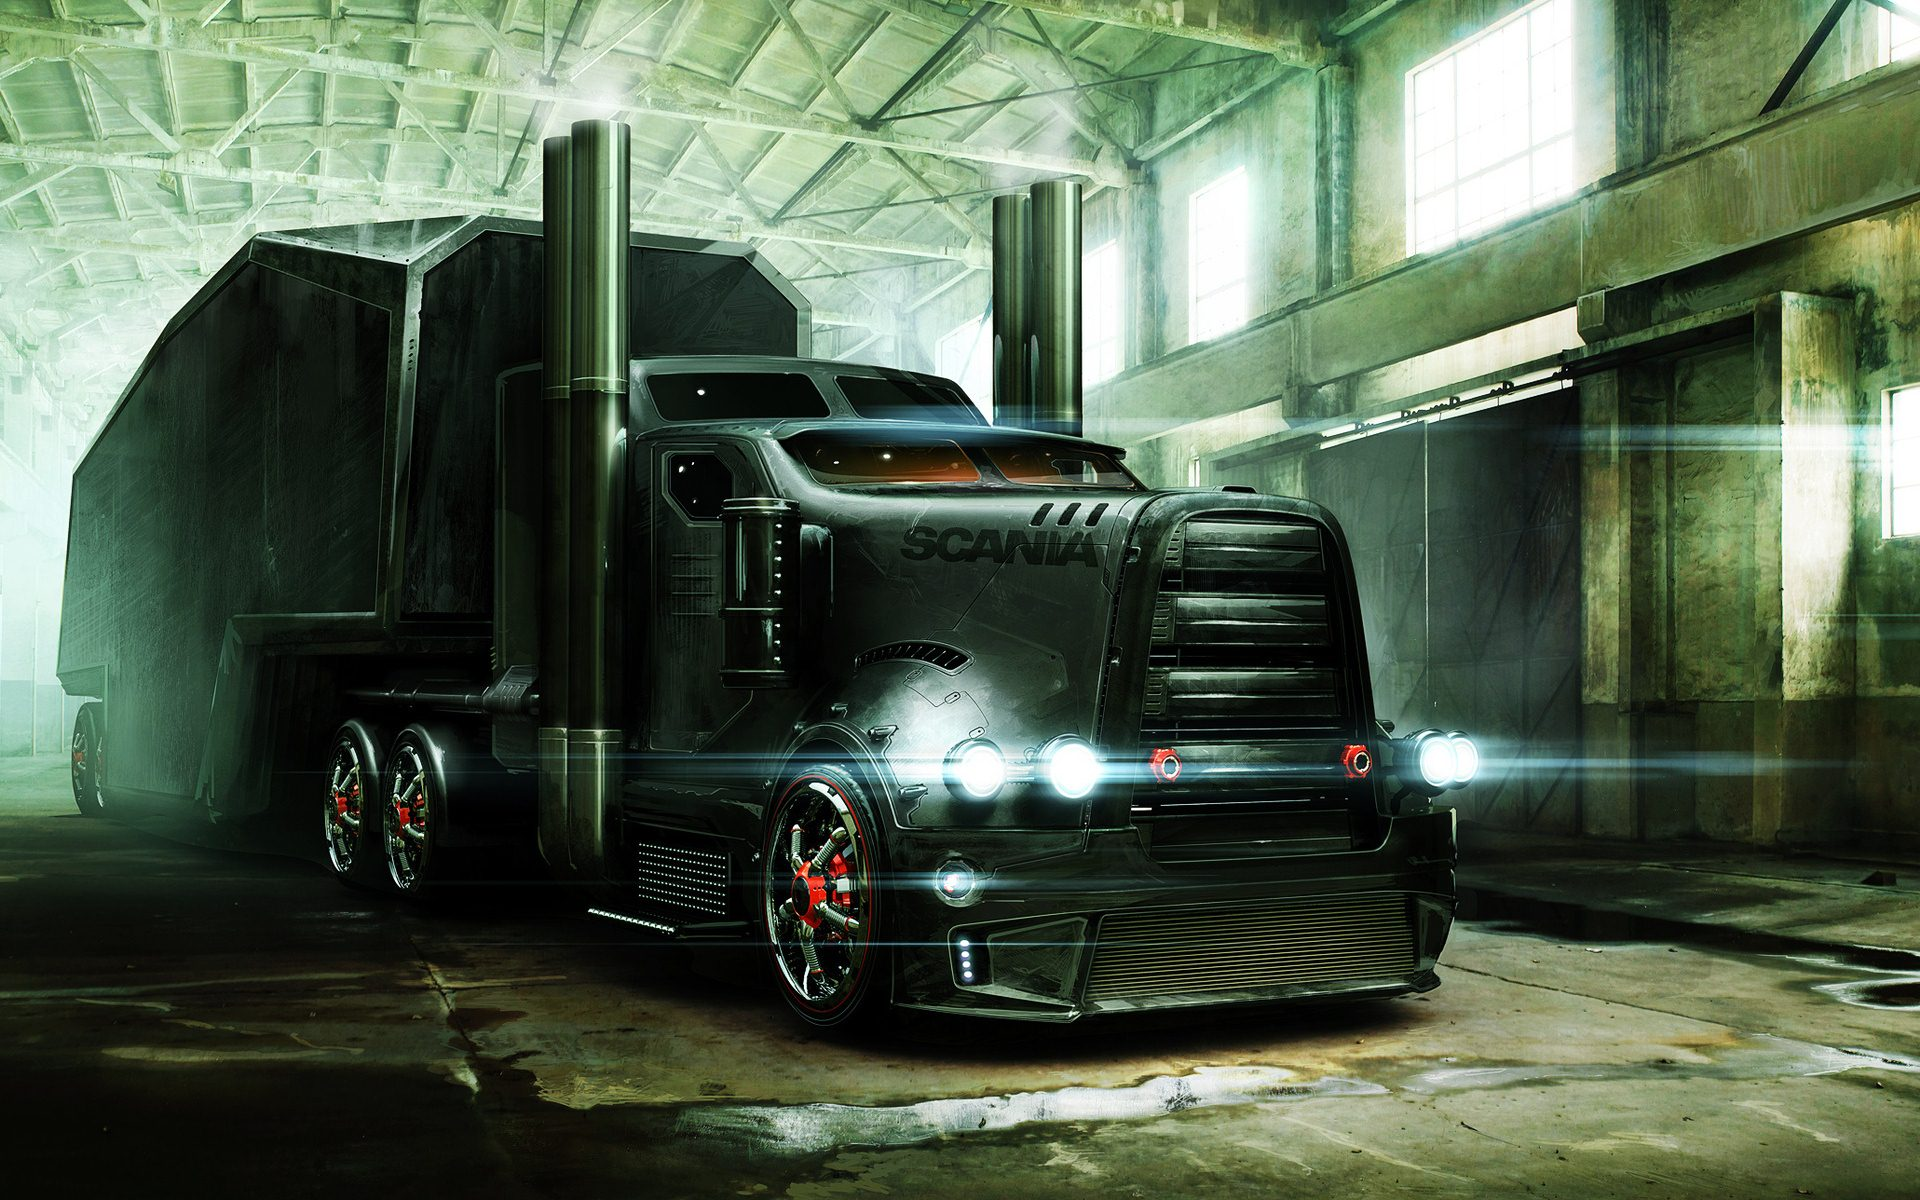 HD Semi Truck Backgrounds | wallpaper.wiki